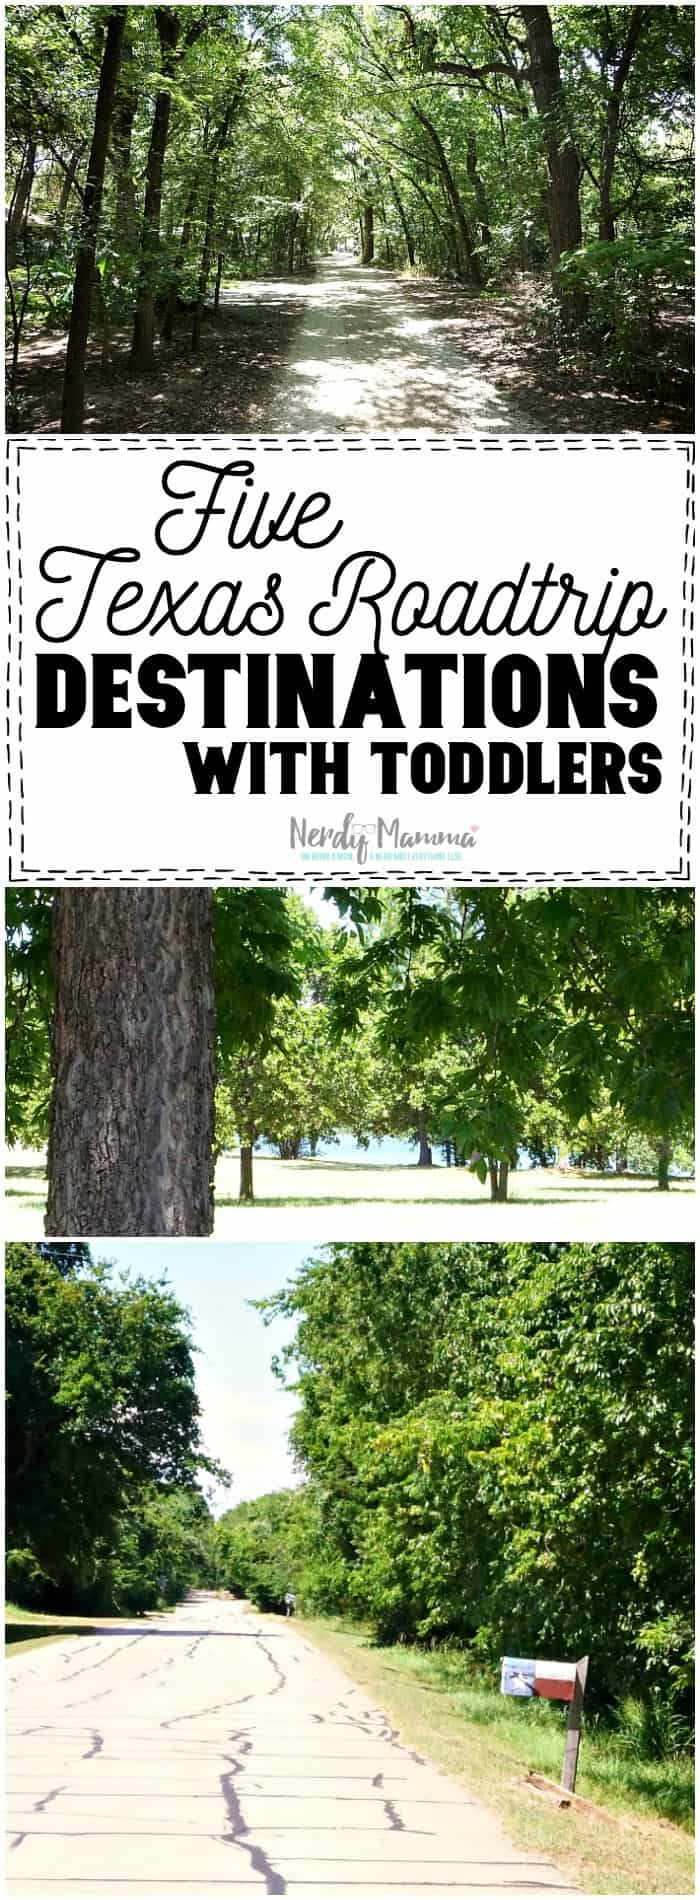 I love these ideas for road trip destinations with toddlers--in Texas! Such great ideas. LOL!